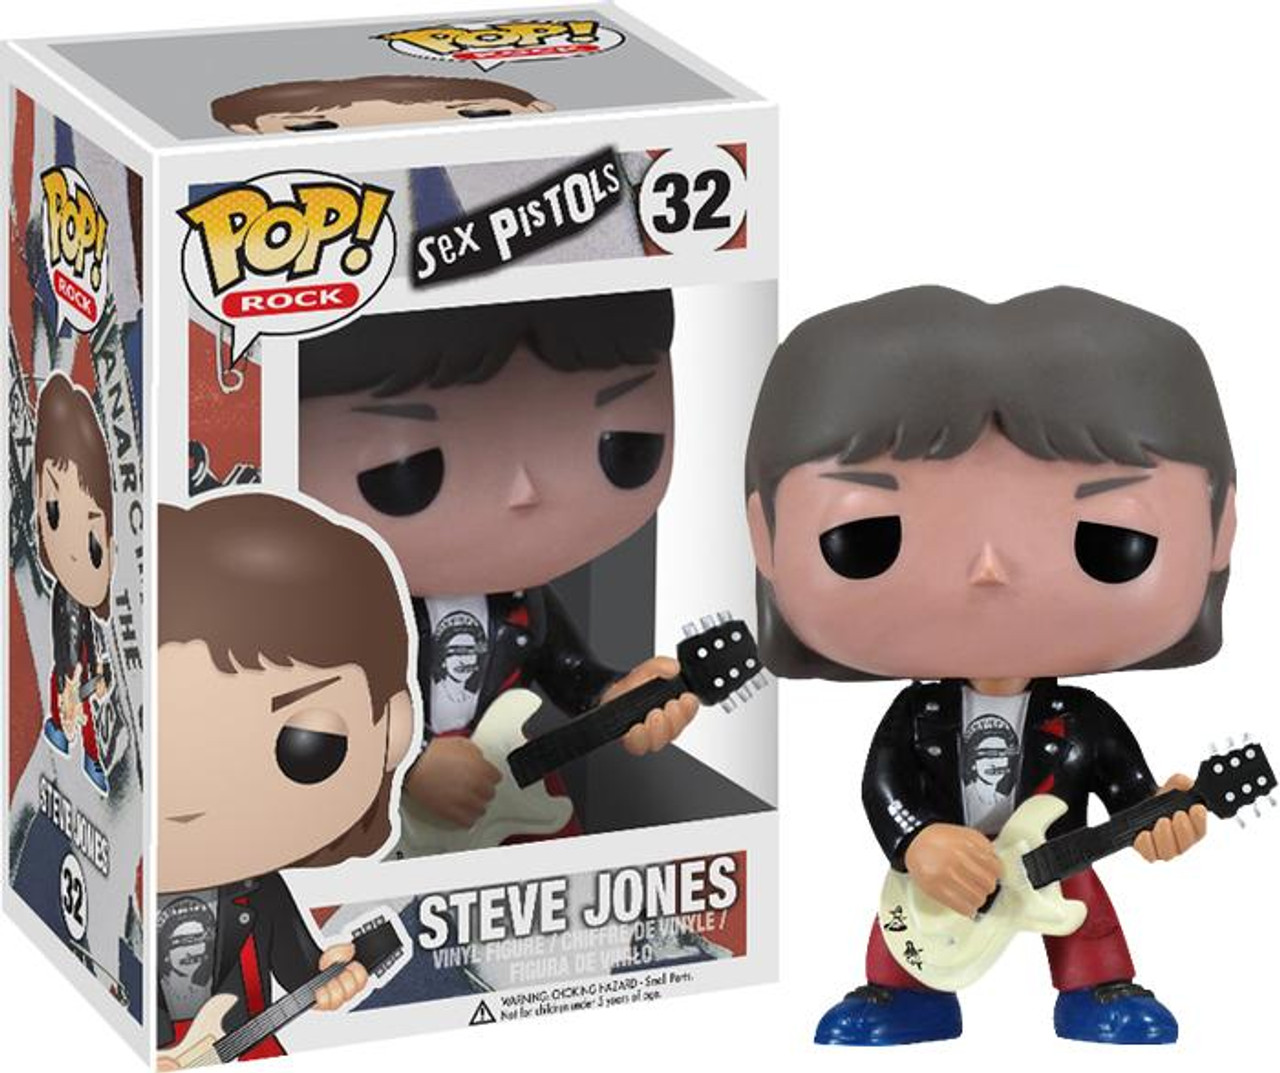 Sex Pistols Funko POP! Rocks Steve Jones Vinyl Figure #32